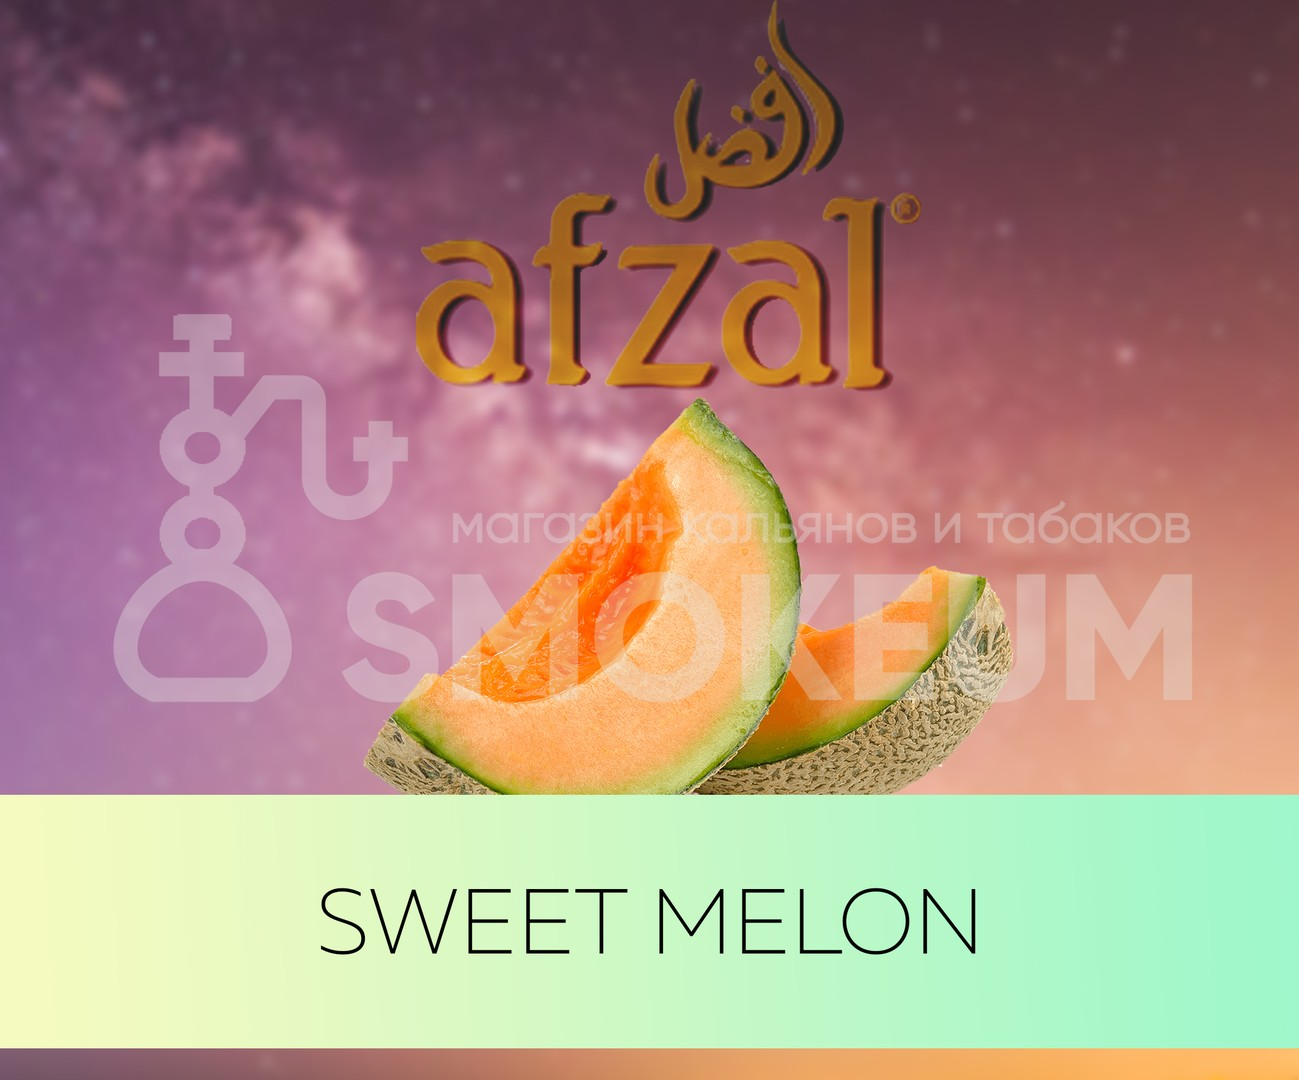 Табак Afzal - Sweet Melon (Сладкая дыня) 50 гр